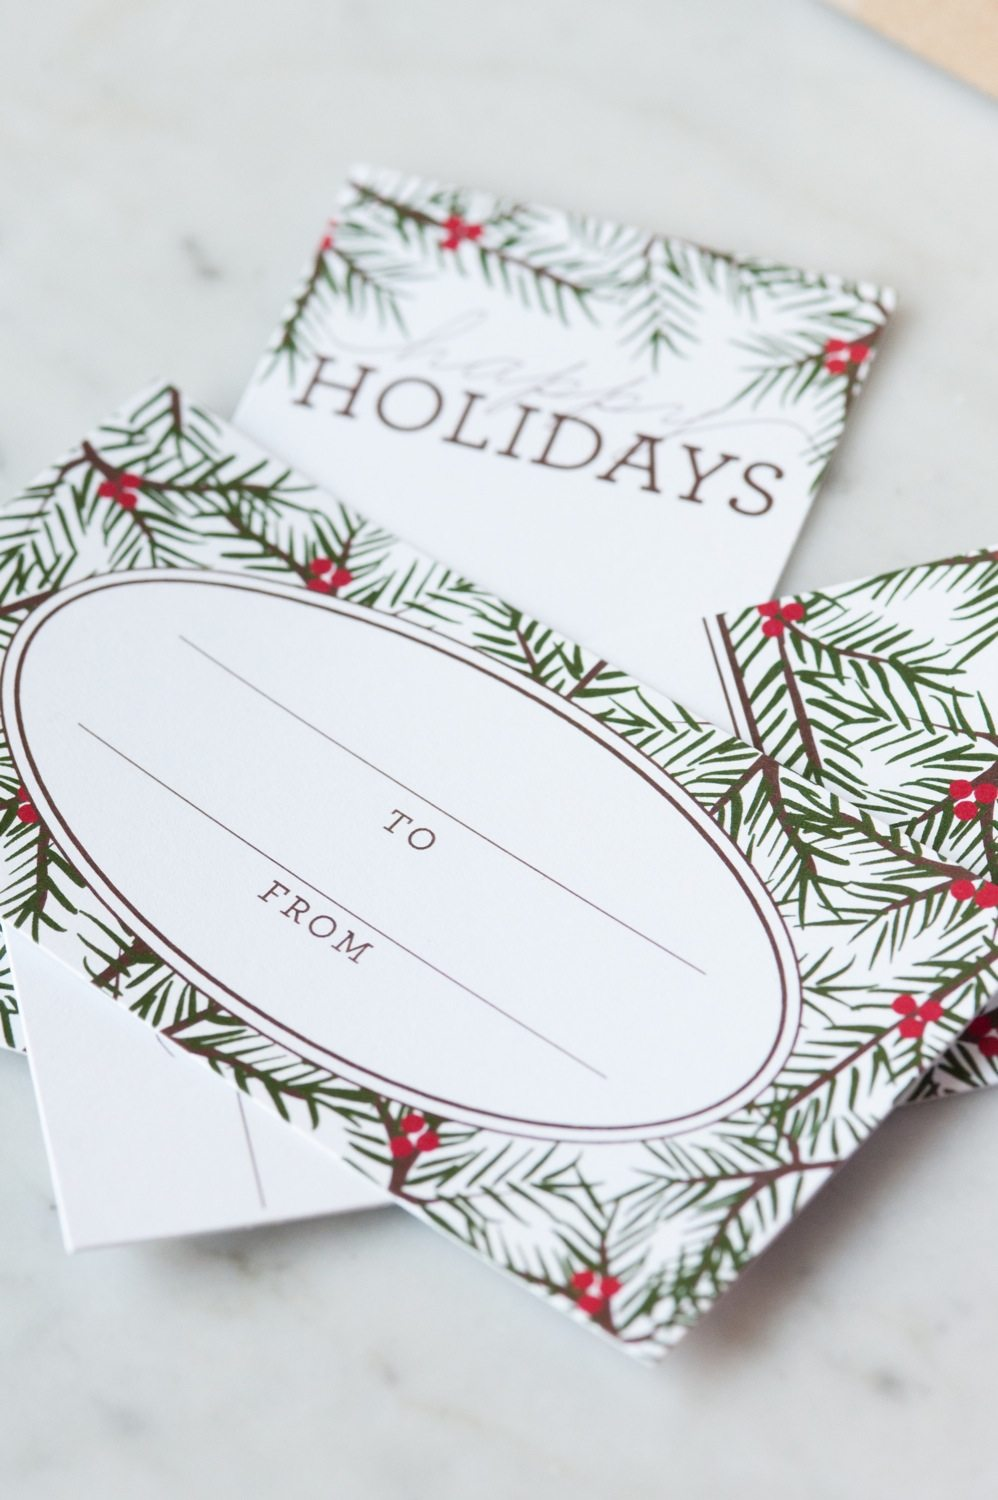 Holiday pine printable gift tags the sweetest occasion make it even simpler on yourself by having them printed by a print shop or office supply store such fedex kinkos staples or officemax where it only costs solutioingenieria Images